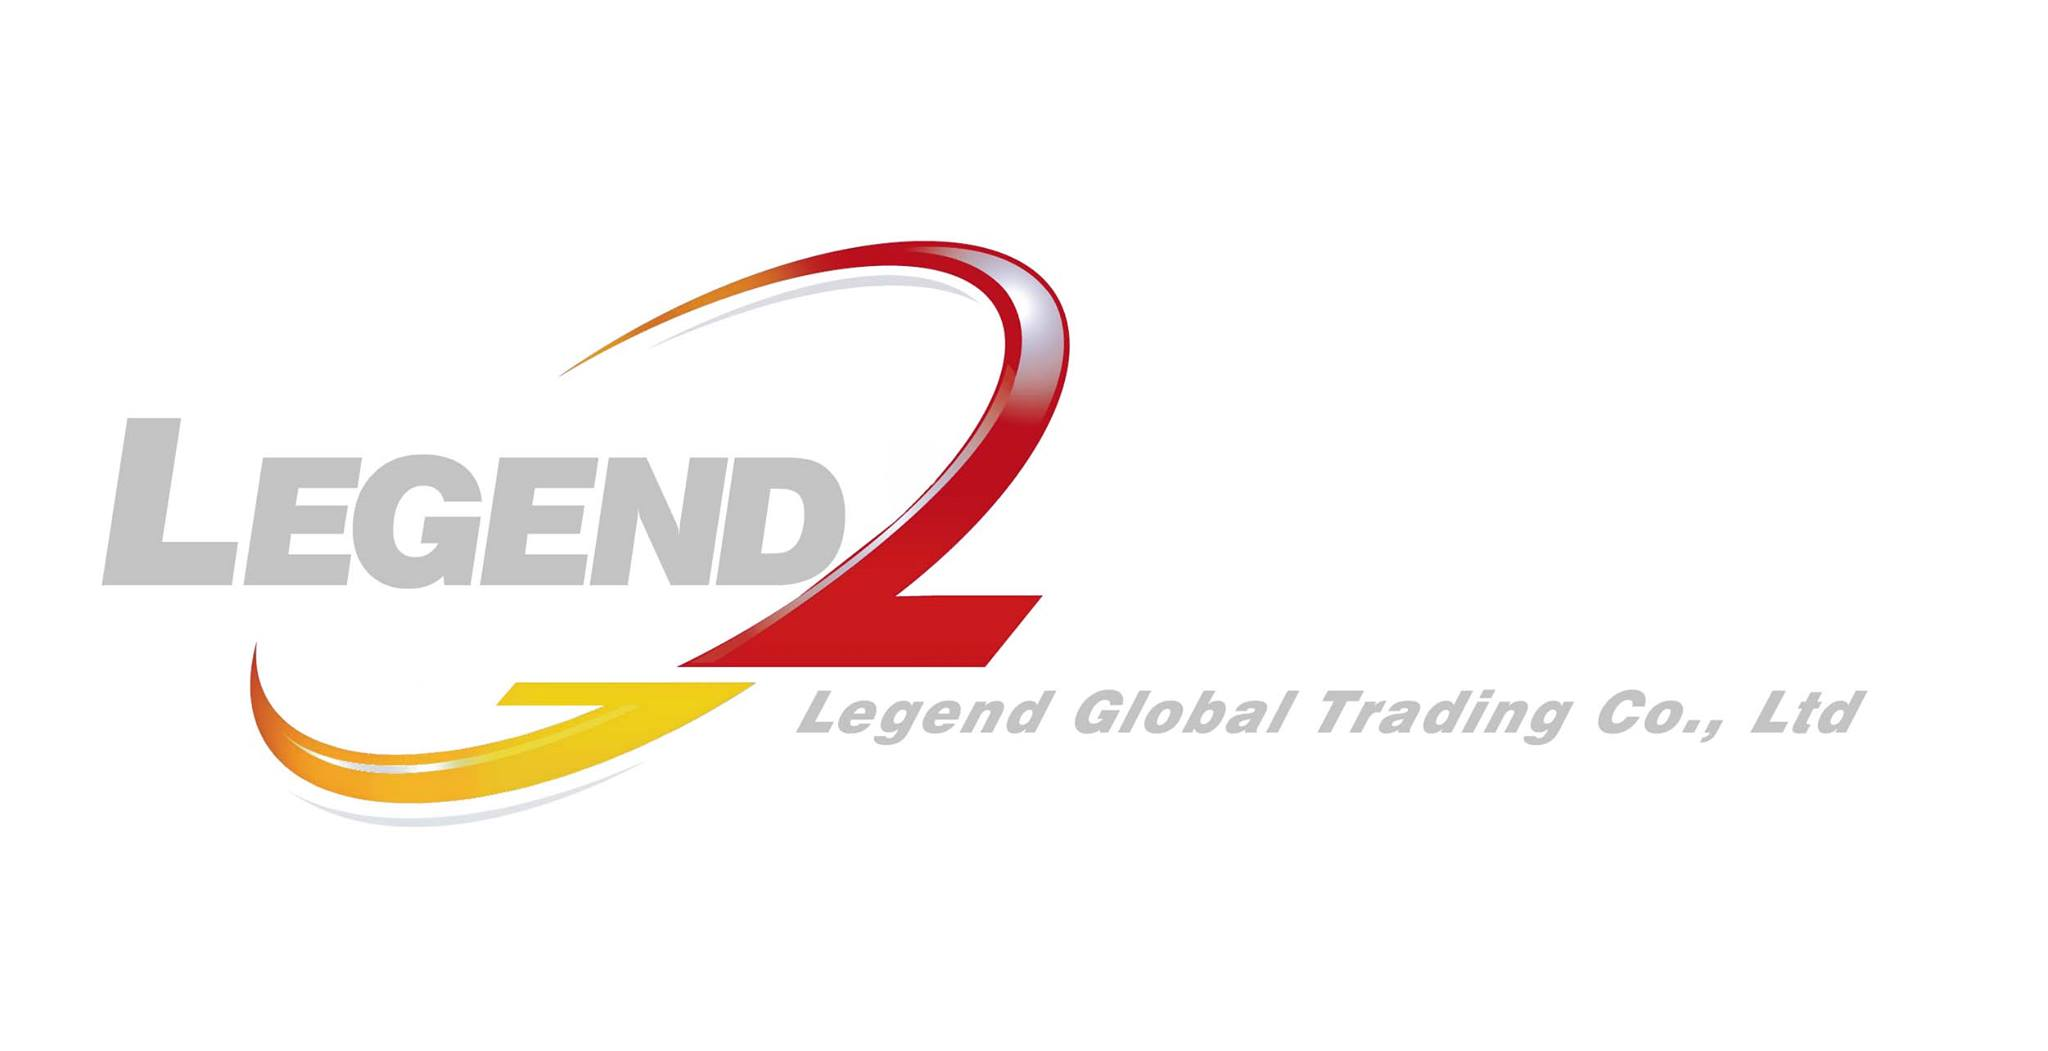 Legend Global Trading Co., Ltd logo